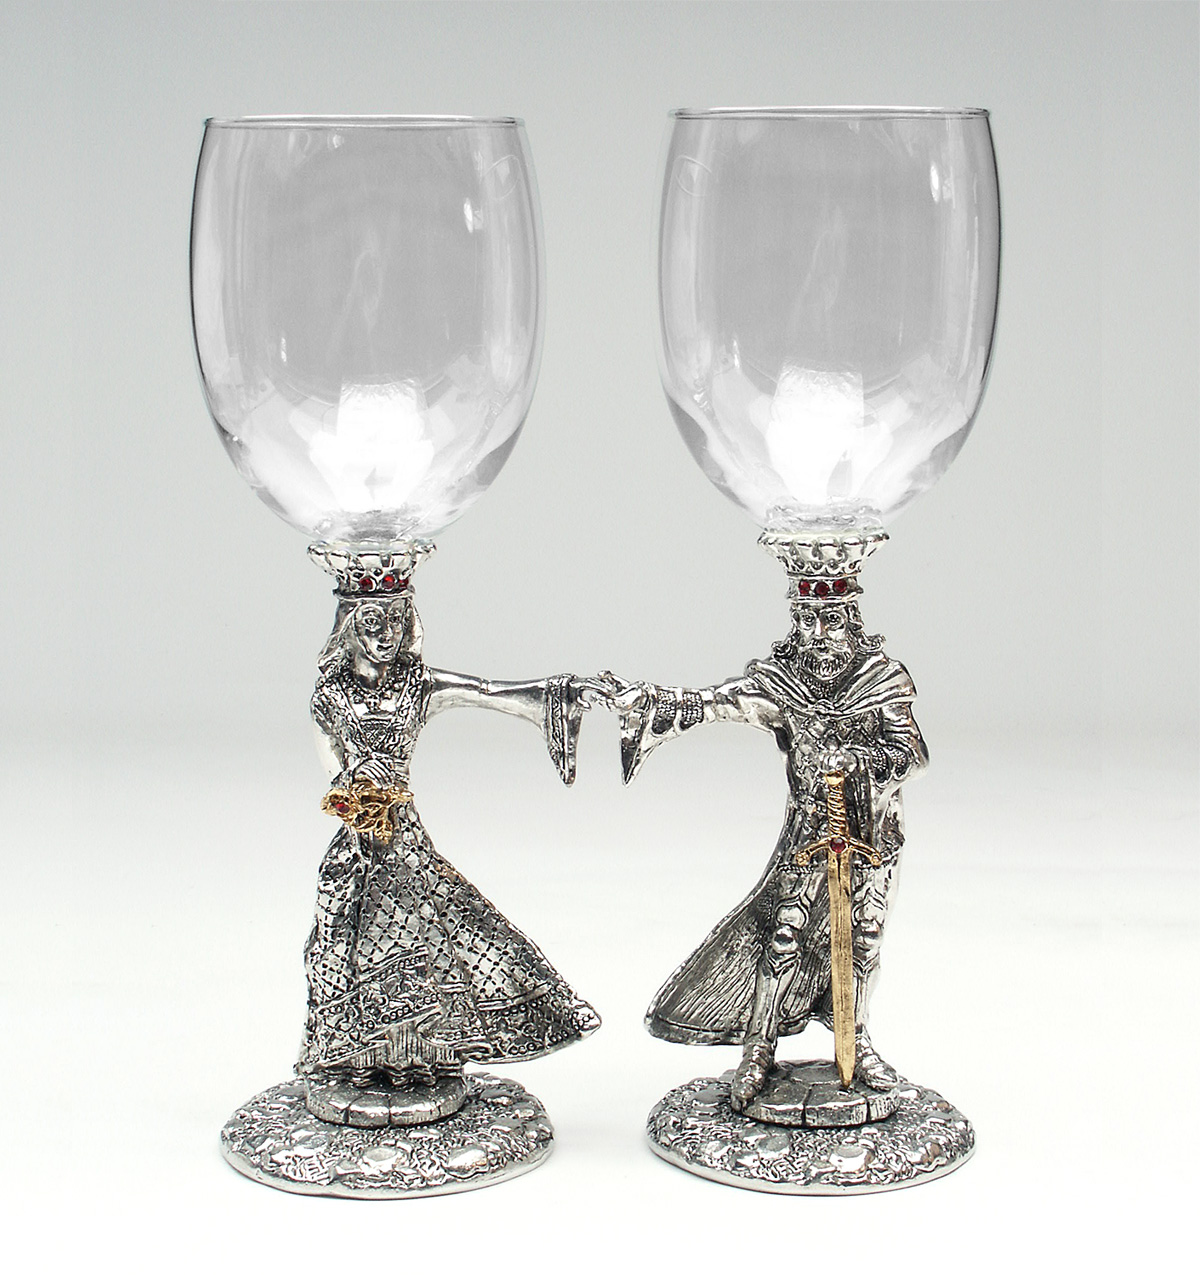 Clear wine glasses with Arthur and Guinevere stems, Austrian crystals, and 23k gold accents